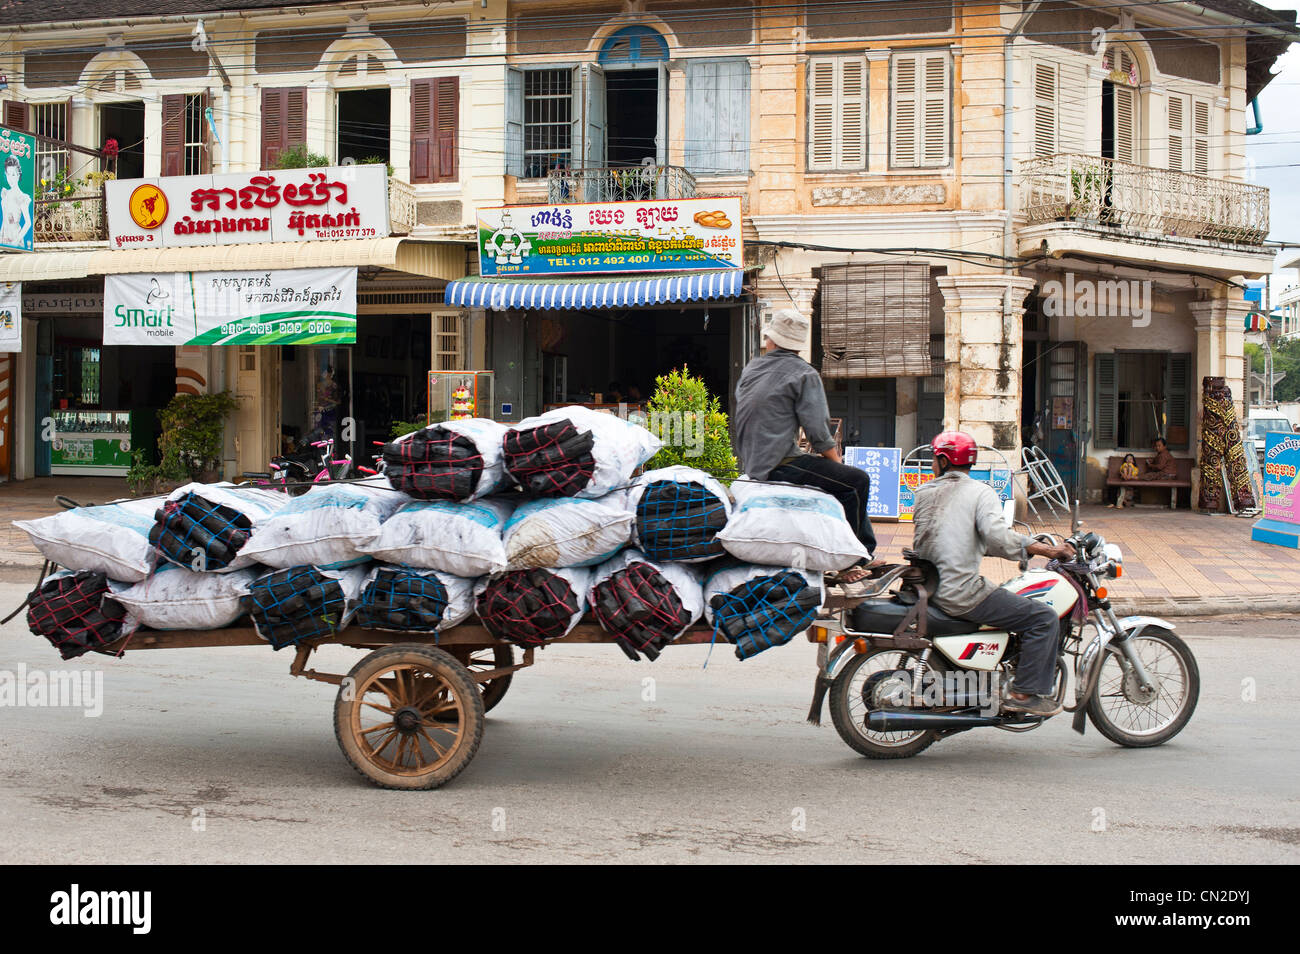 Cambodia, Battambang Province, town of Battambang, coal deliverer in front of an old colonial house - Stock Image